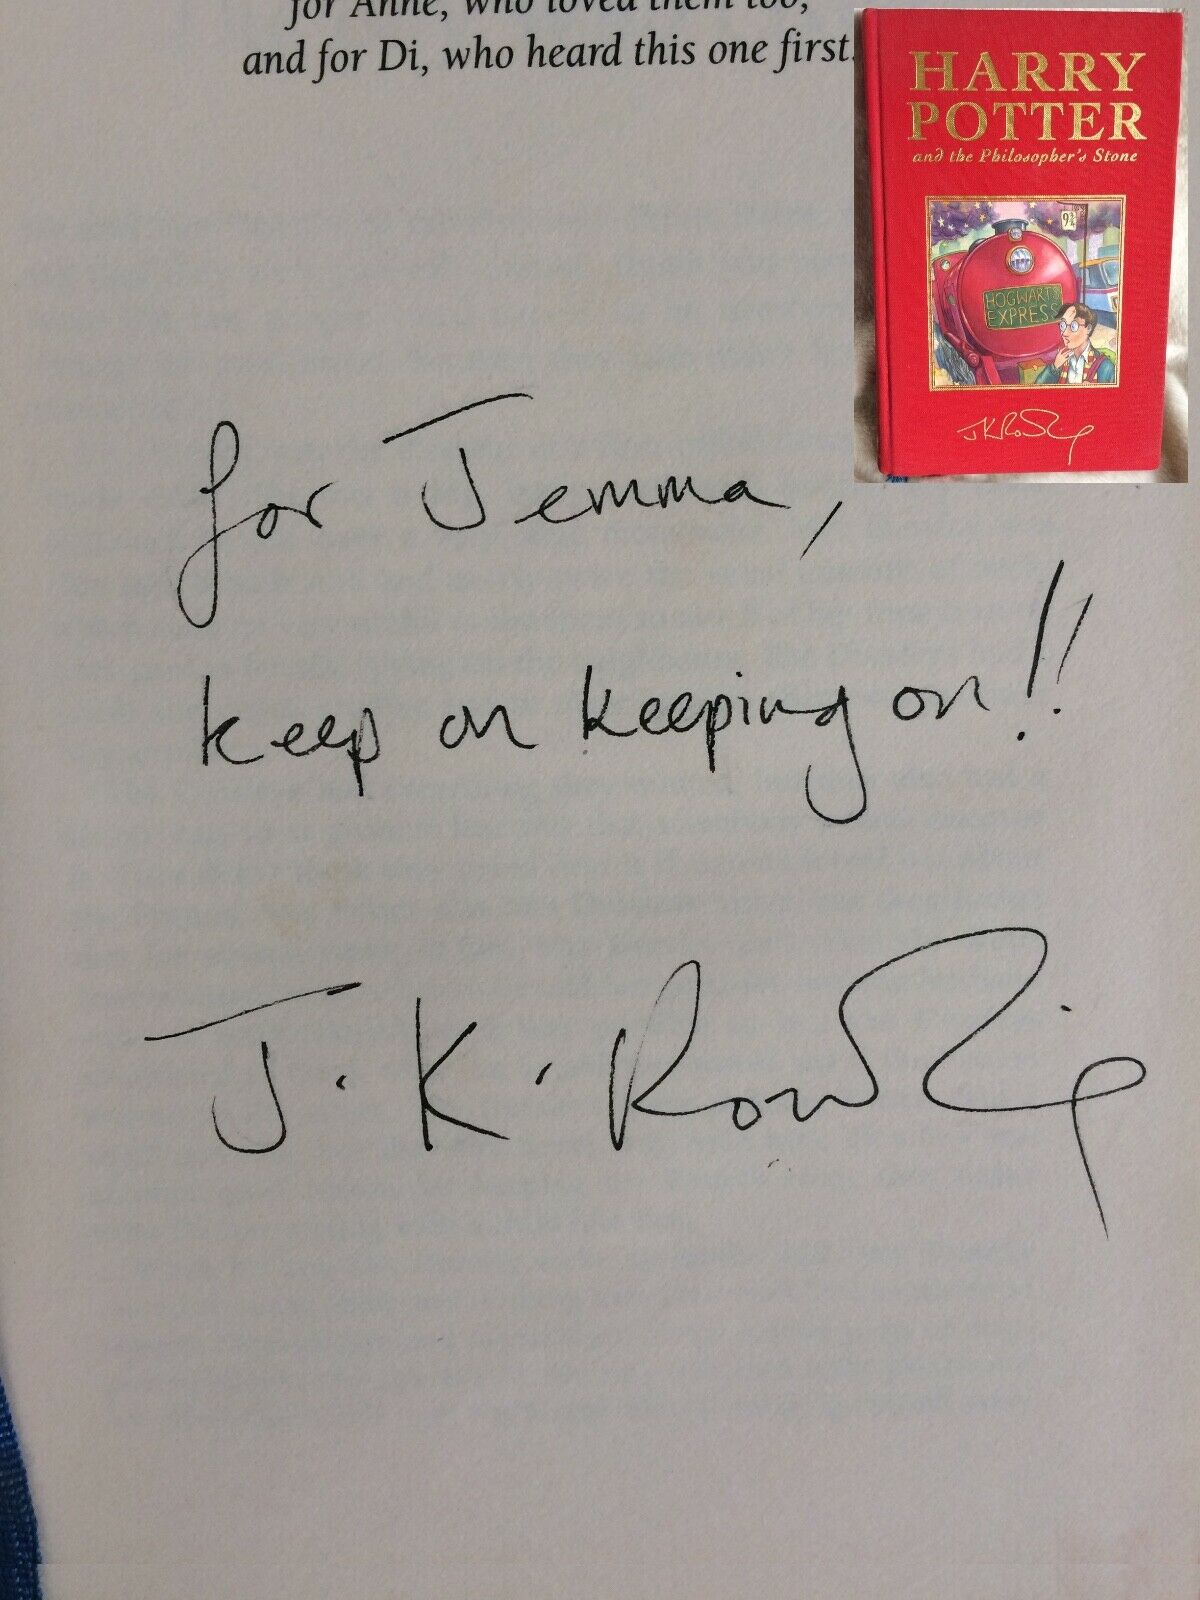 J.K. Rowling forgery found on ebay UK inside a Harry Potter and the Philosopher's Stone. Sold by Quartermain-75